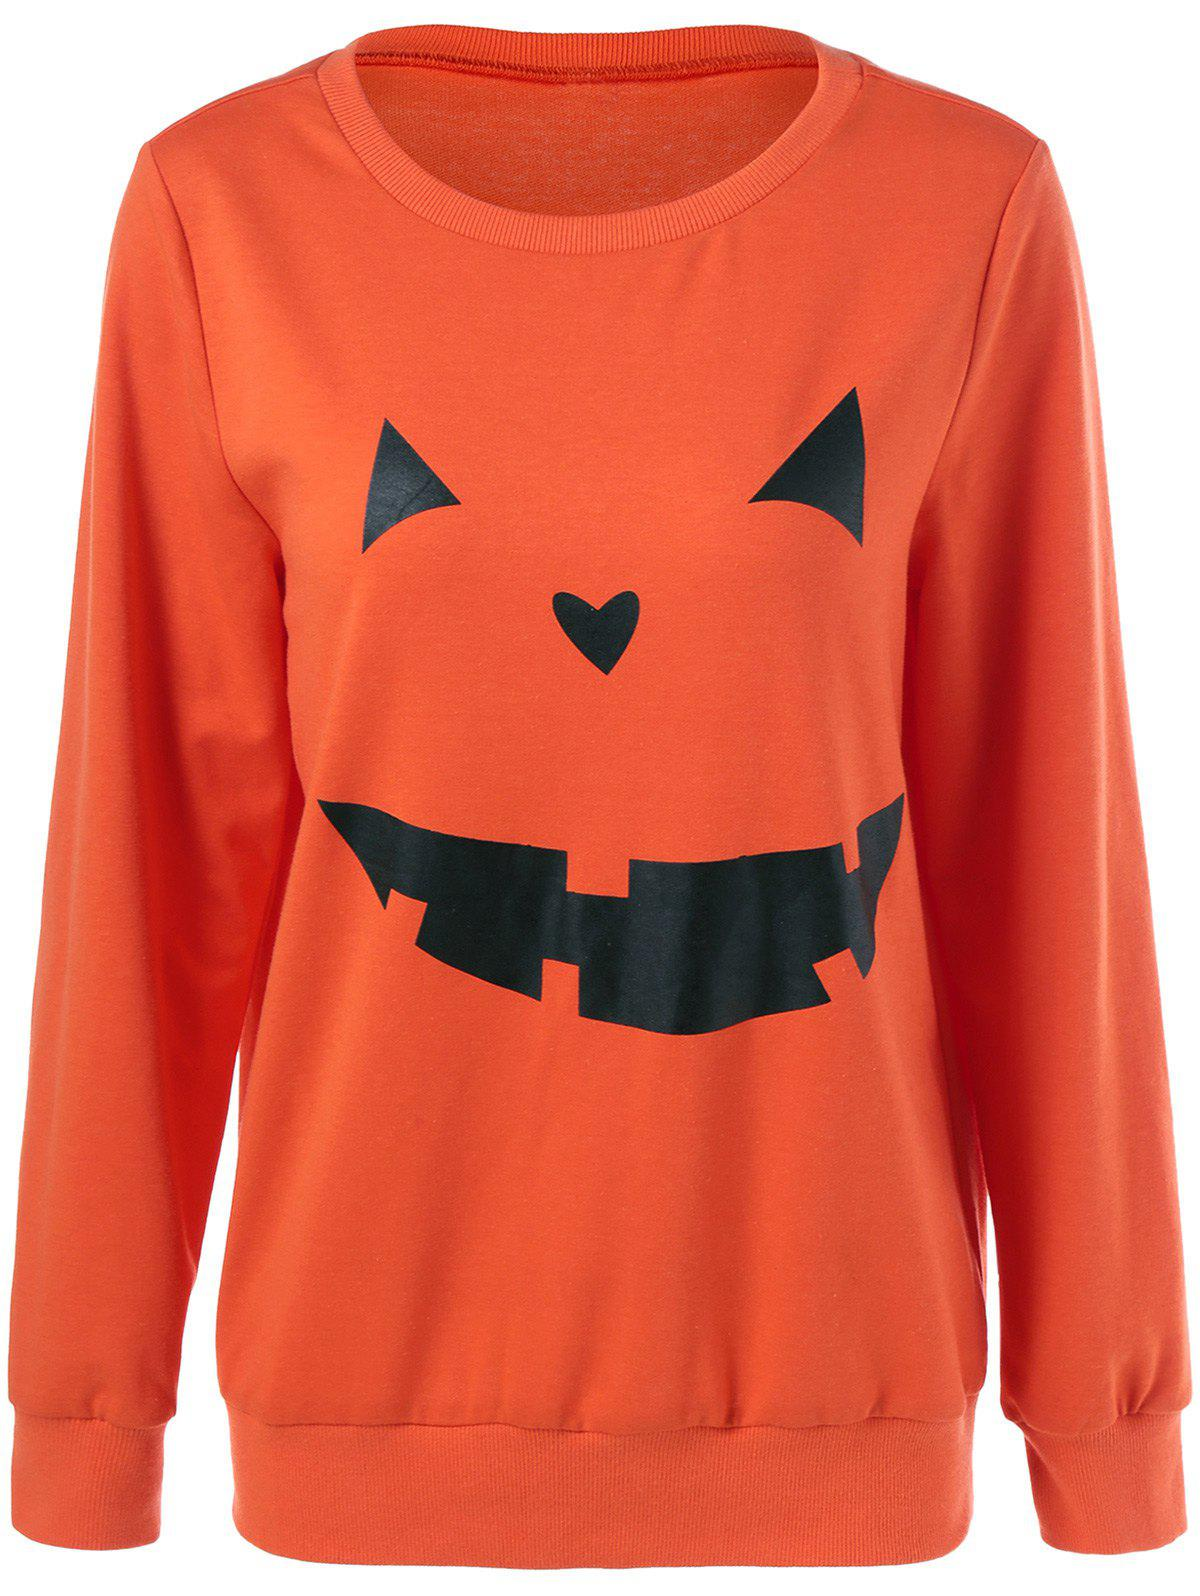 Buy Halloween Grimace Print Sweatshirt